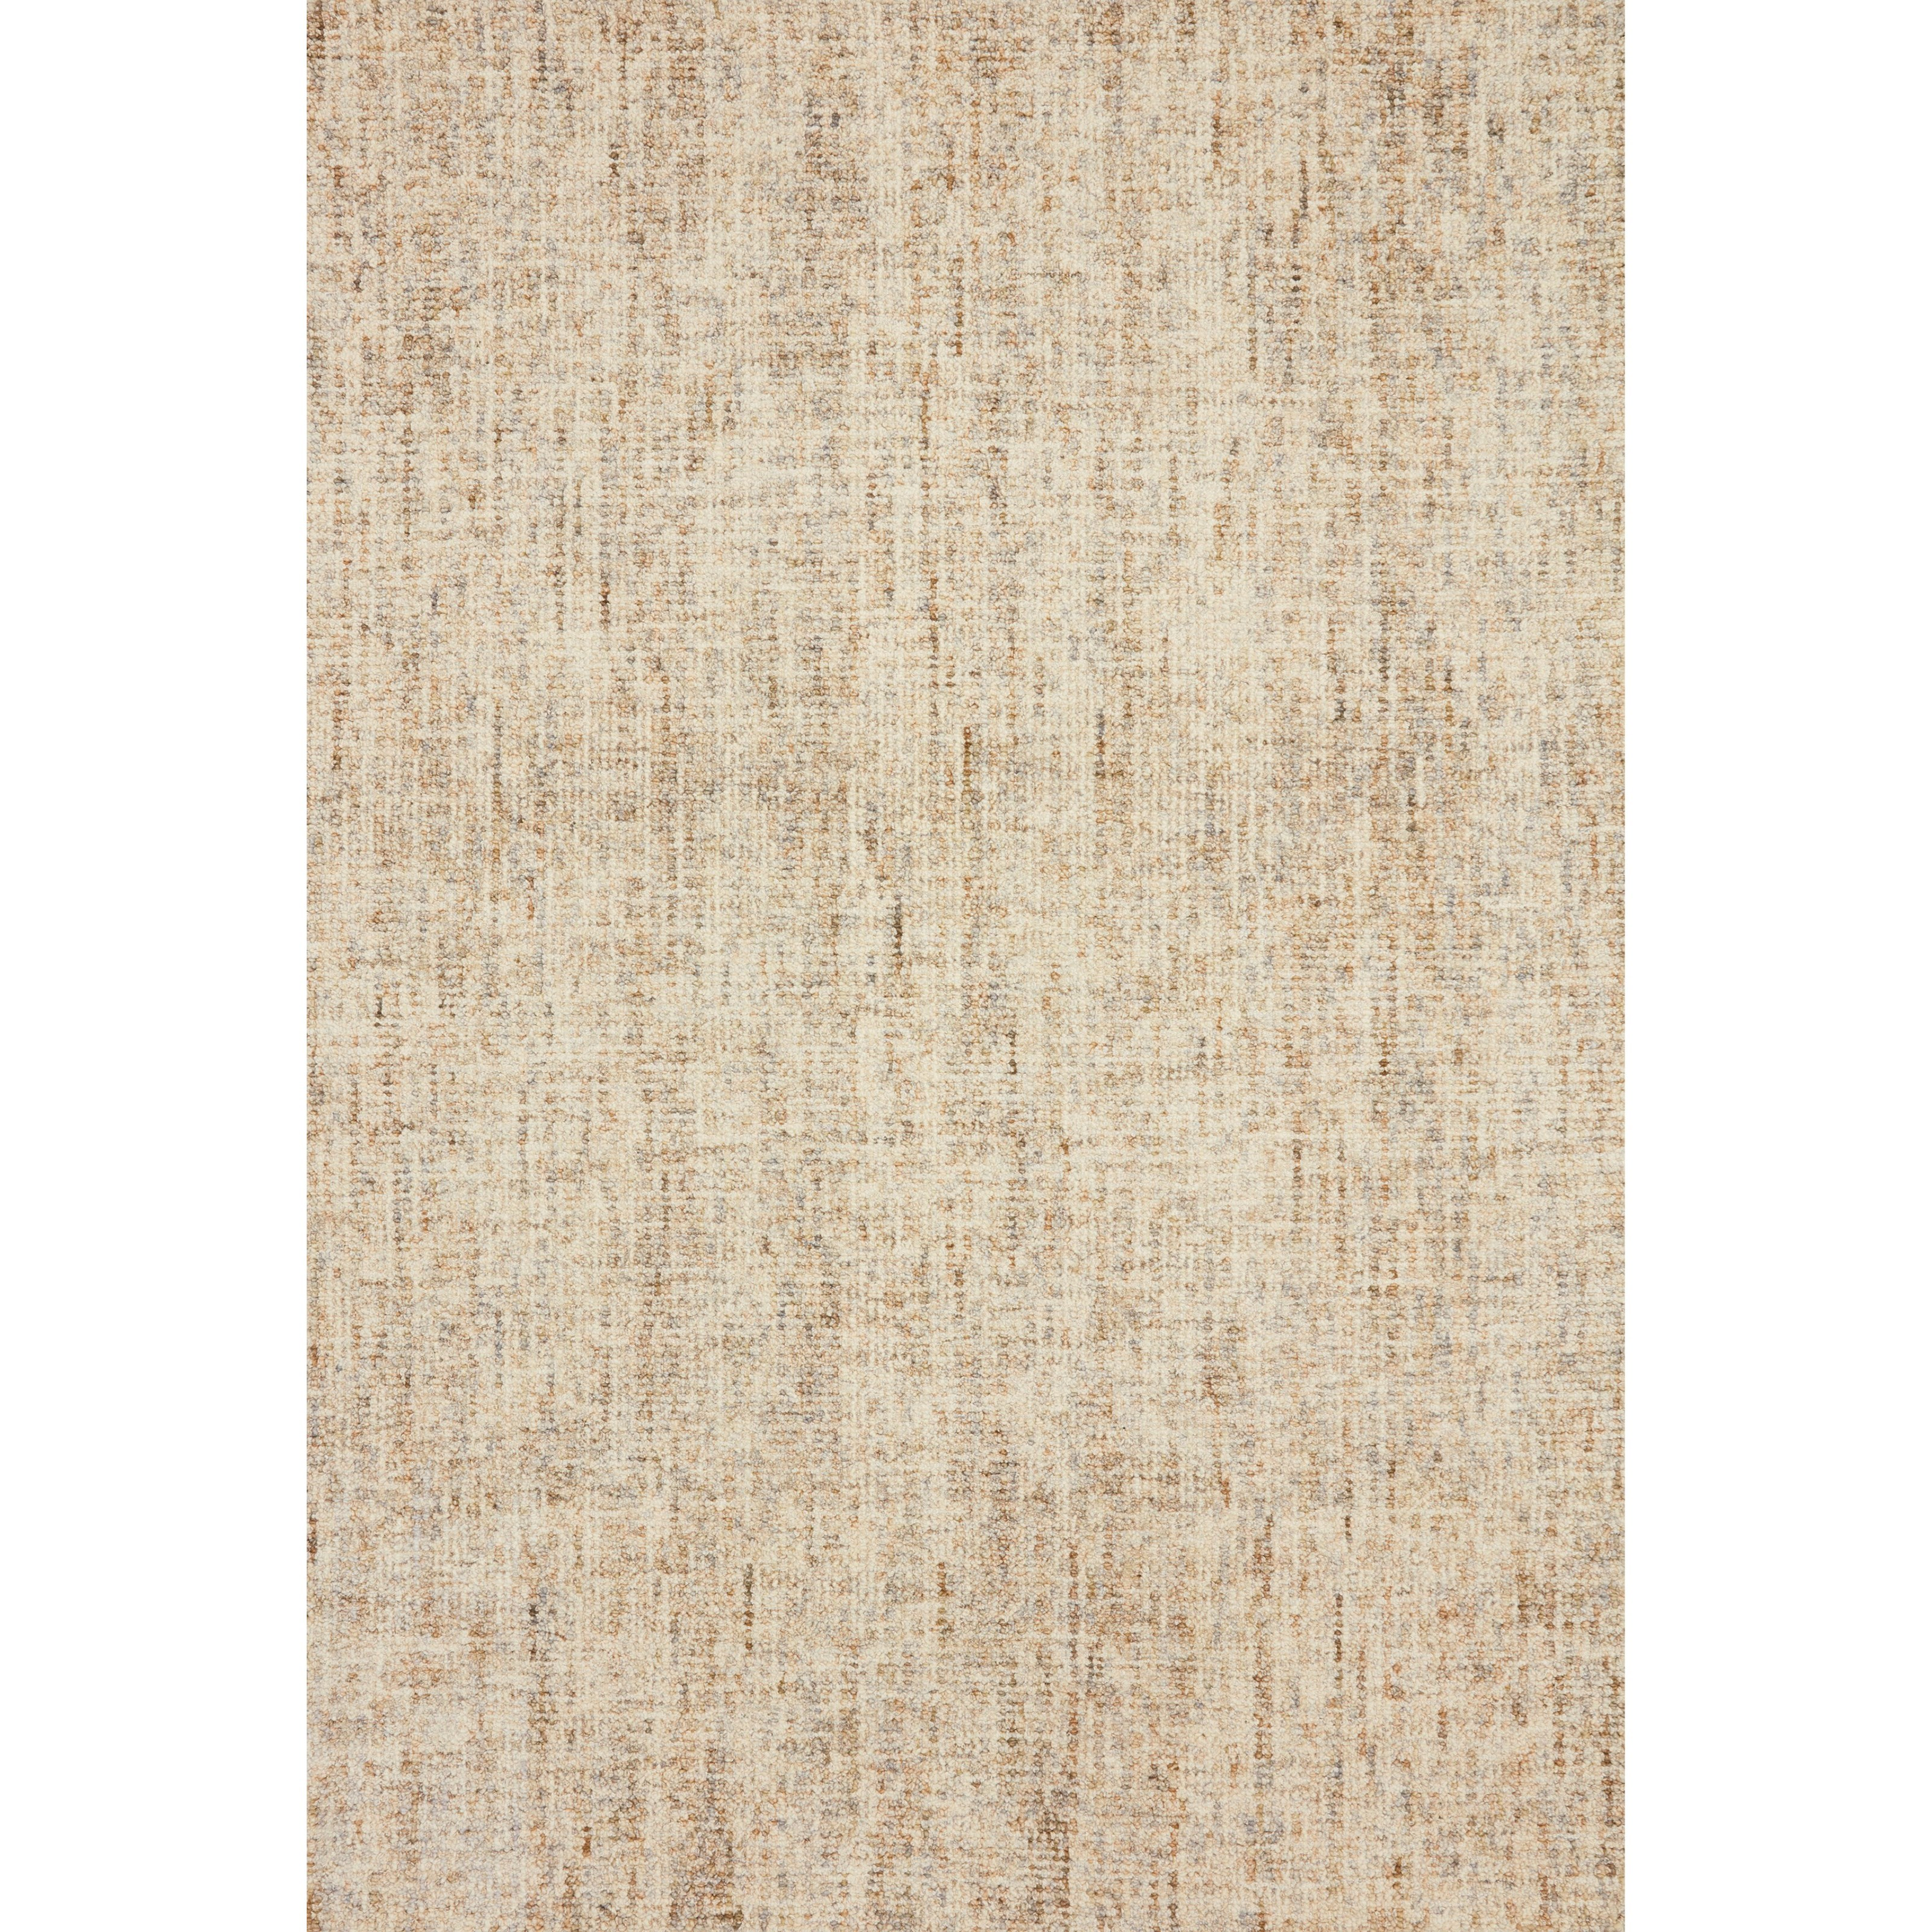 """Harlow 3'6"""" x 5'6"""" Sand / Stone Rug by Loloi Rugs at Virginia Furniture Market"""